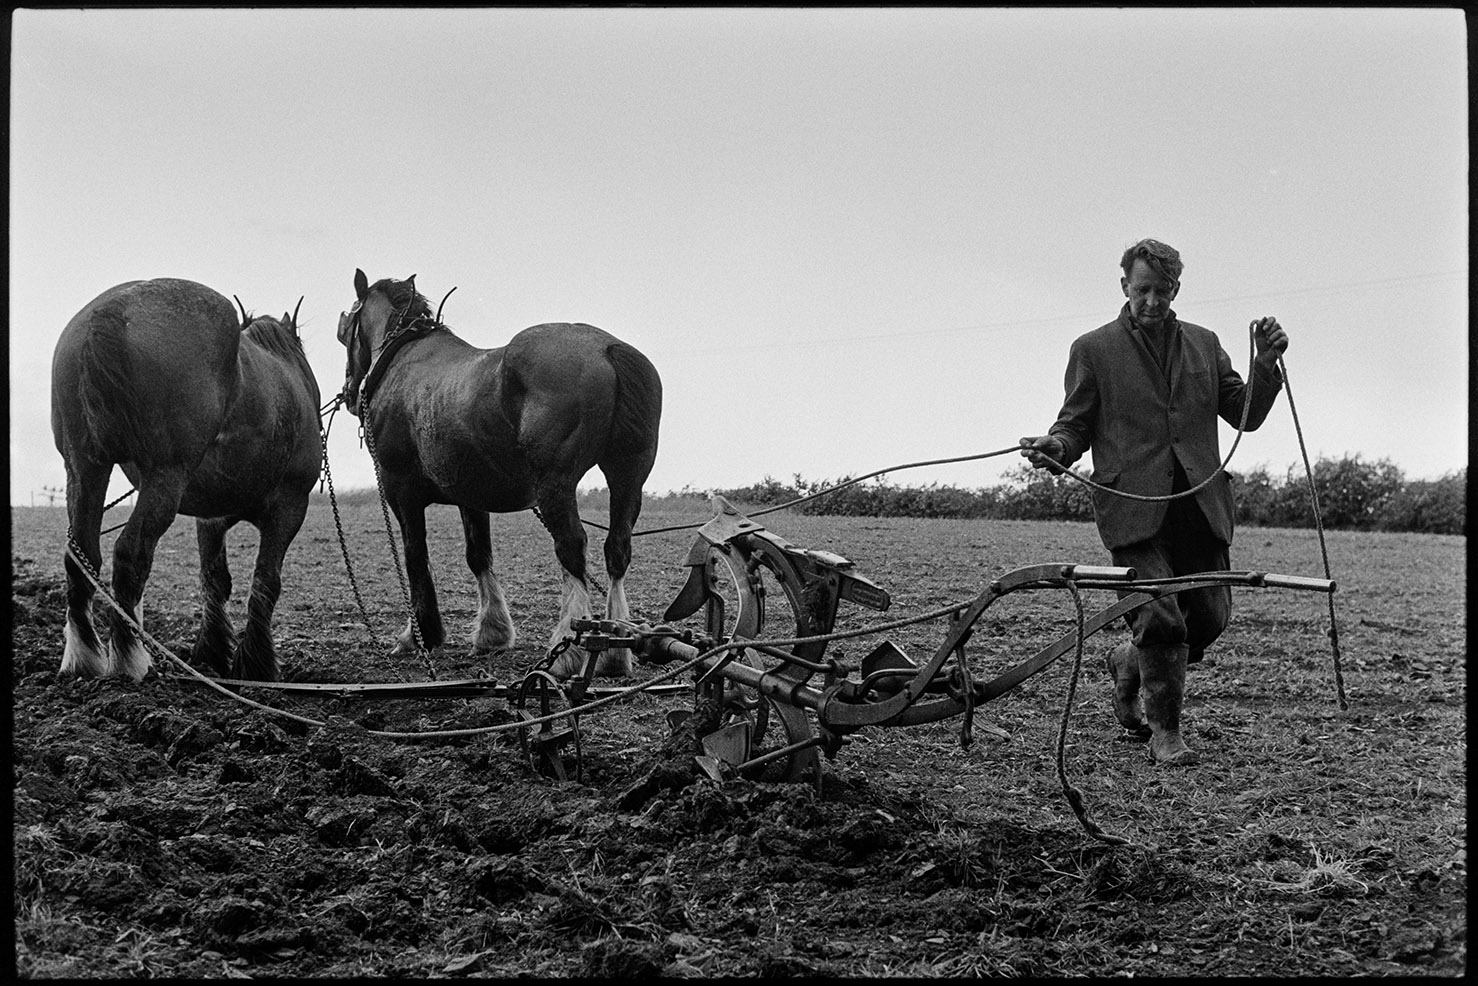 Man ploughing with two horses - Seymour Husbands, Charles, Sandy Park, June 1975. Documentary photograph by James Ravilious for the Beaford Archive © Beaford Arts